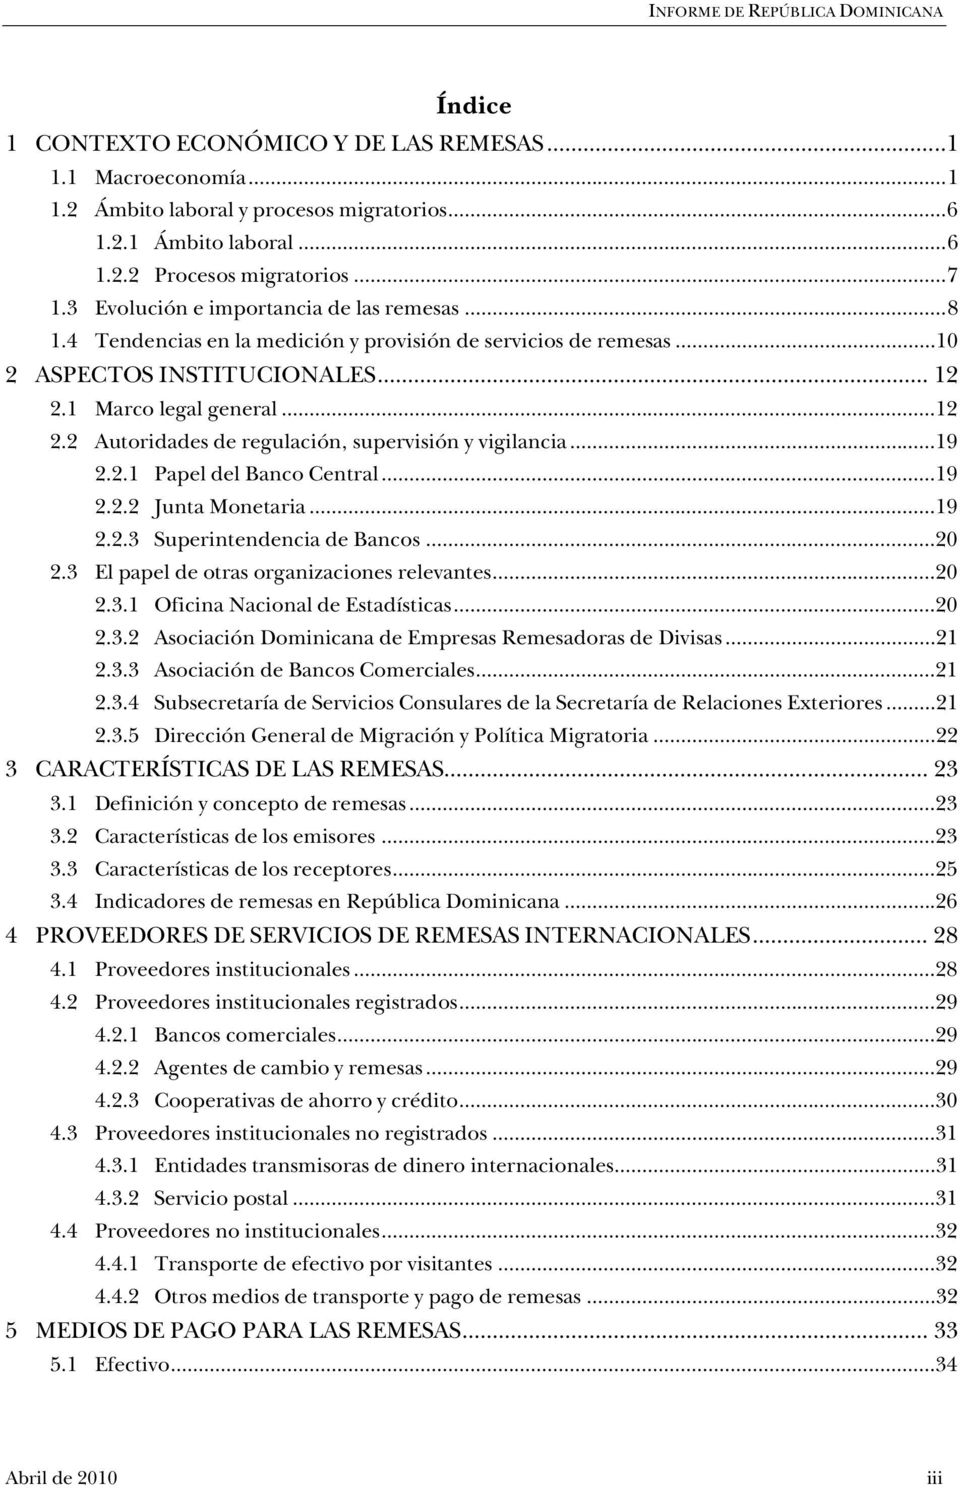 1 Marco legal general...12 2.2 Autoridades de regulación, supervisión y vigilancia...19 2.2.1 Papel del Banco Central...19 2.2.2 Junta Monetaria...19 2.2.3 Superintendencia de Bancos...20 2.